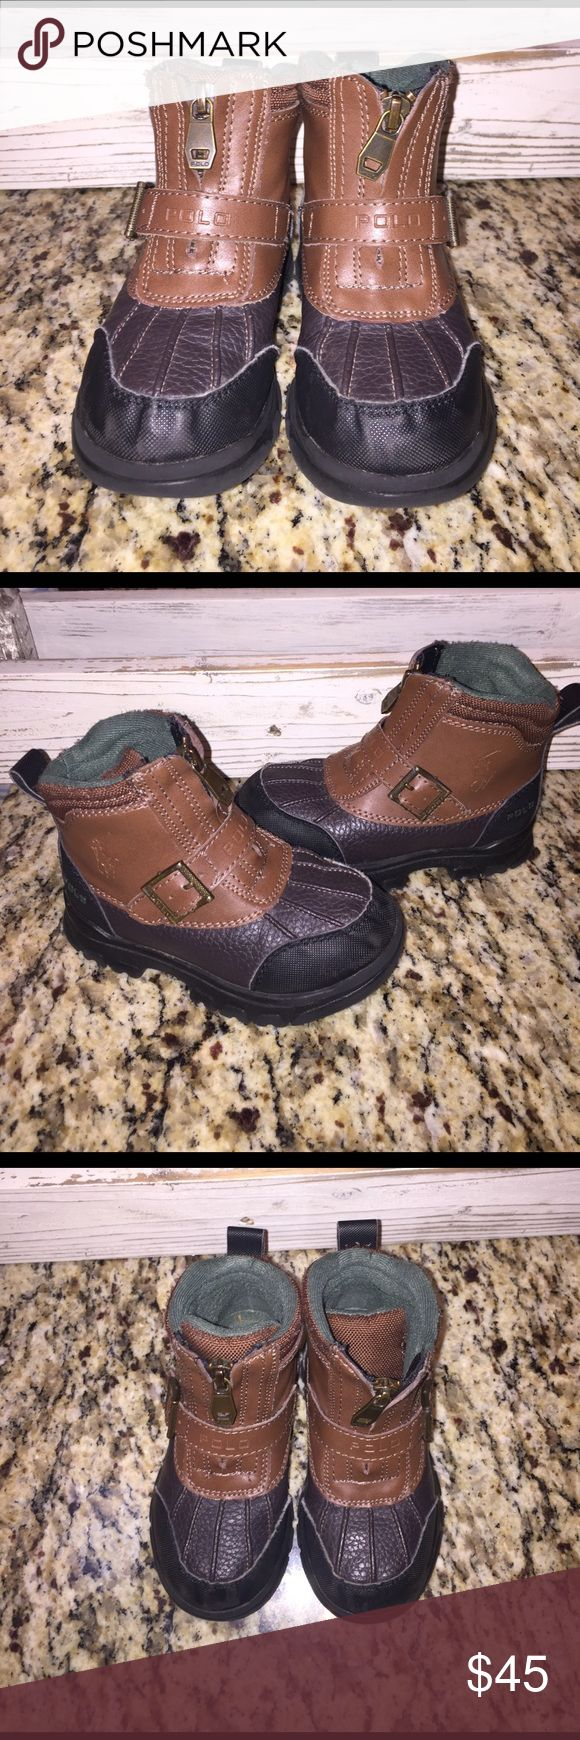 Toddler Polo Boots Size 9. Perfect condition! My items come from a pet free and smoke free home. Same or next day shipping! Polo by Ralph Lauren Shoes Boots